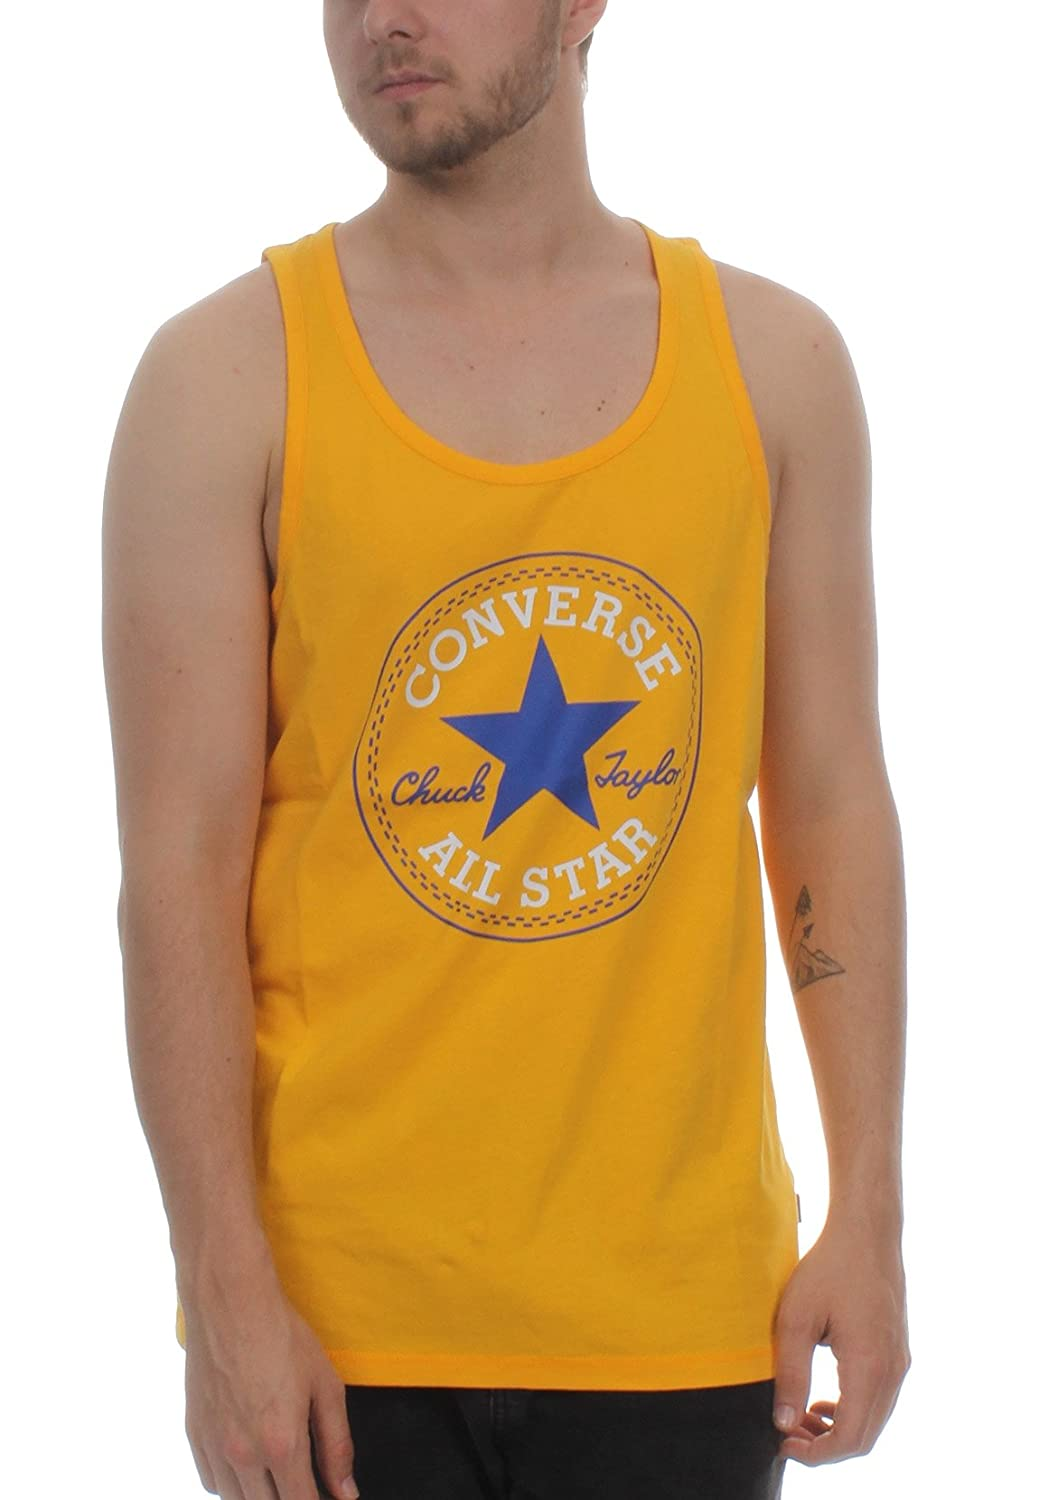 Converse Chuck Patch Tank T-Shirt, Men, Men 10002888-A03